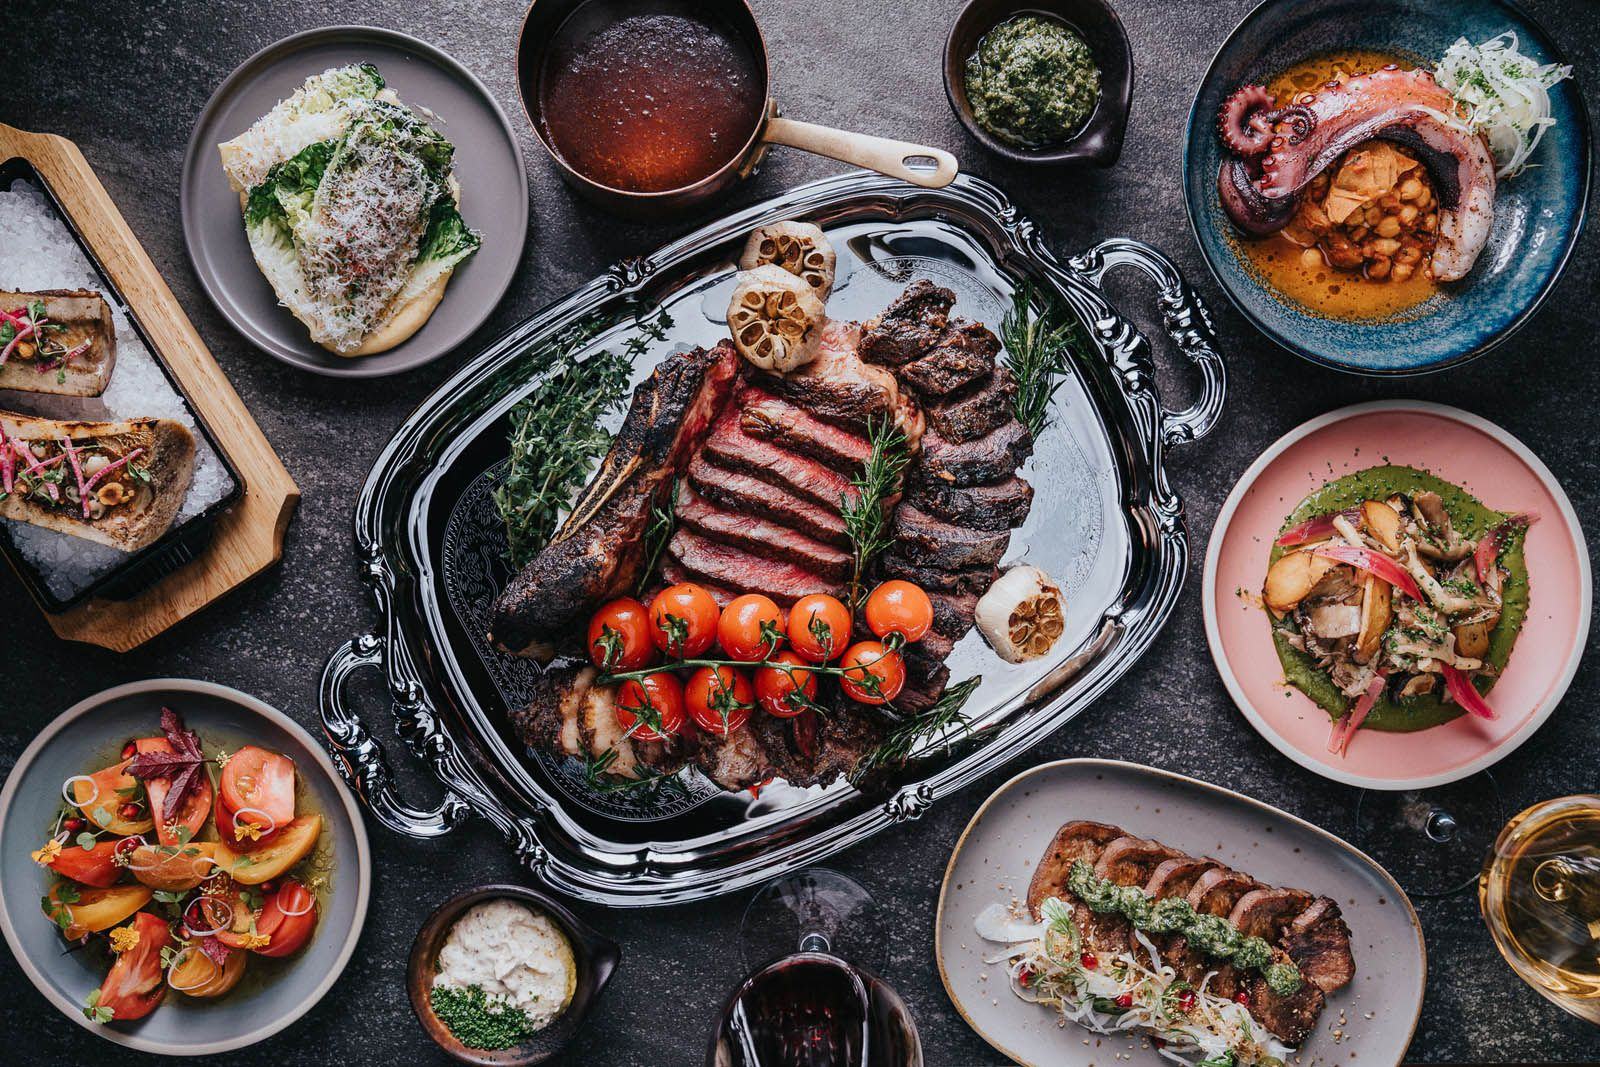 Where to Eat in Singapore This Week: Fat Belly Social Steakhouse, Cut by Wolfgang Puck, The Feather Blade, Kinki, Ash & Elm